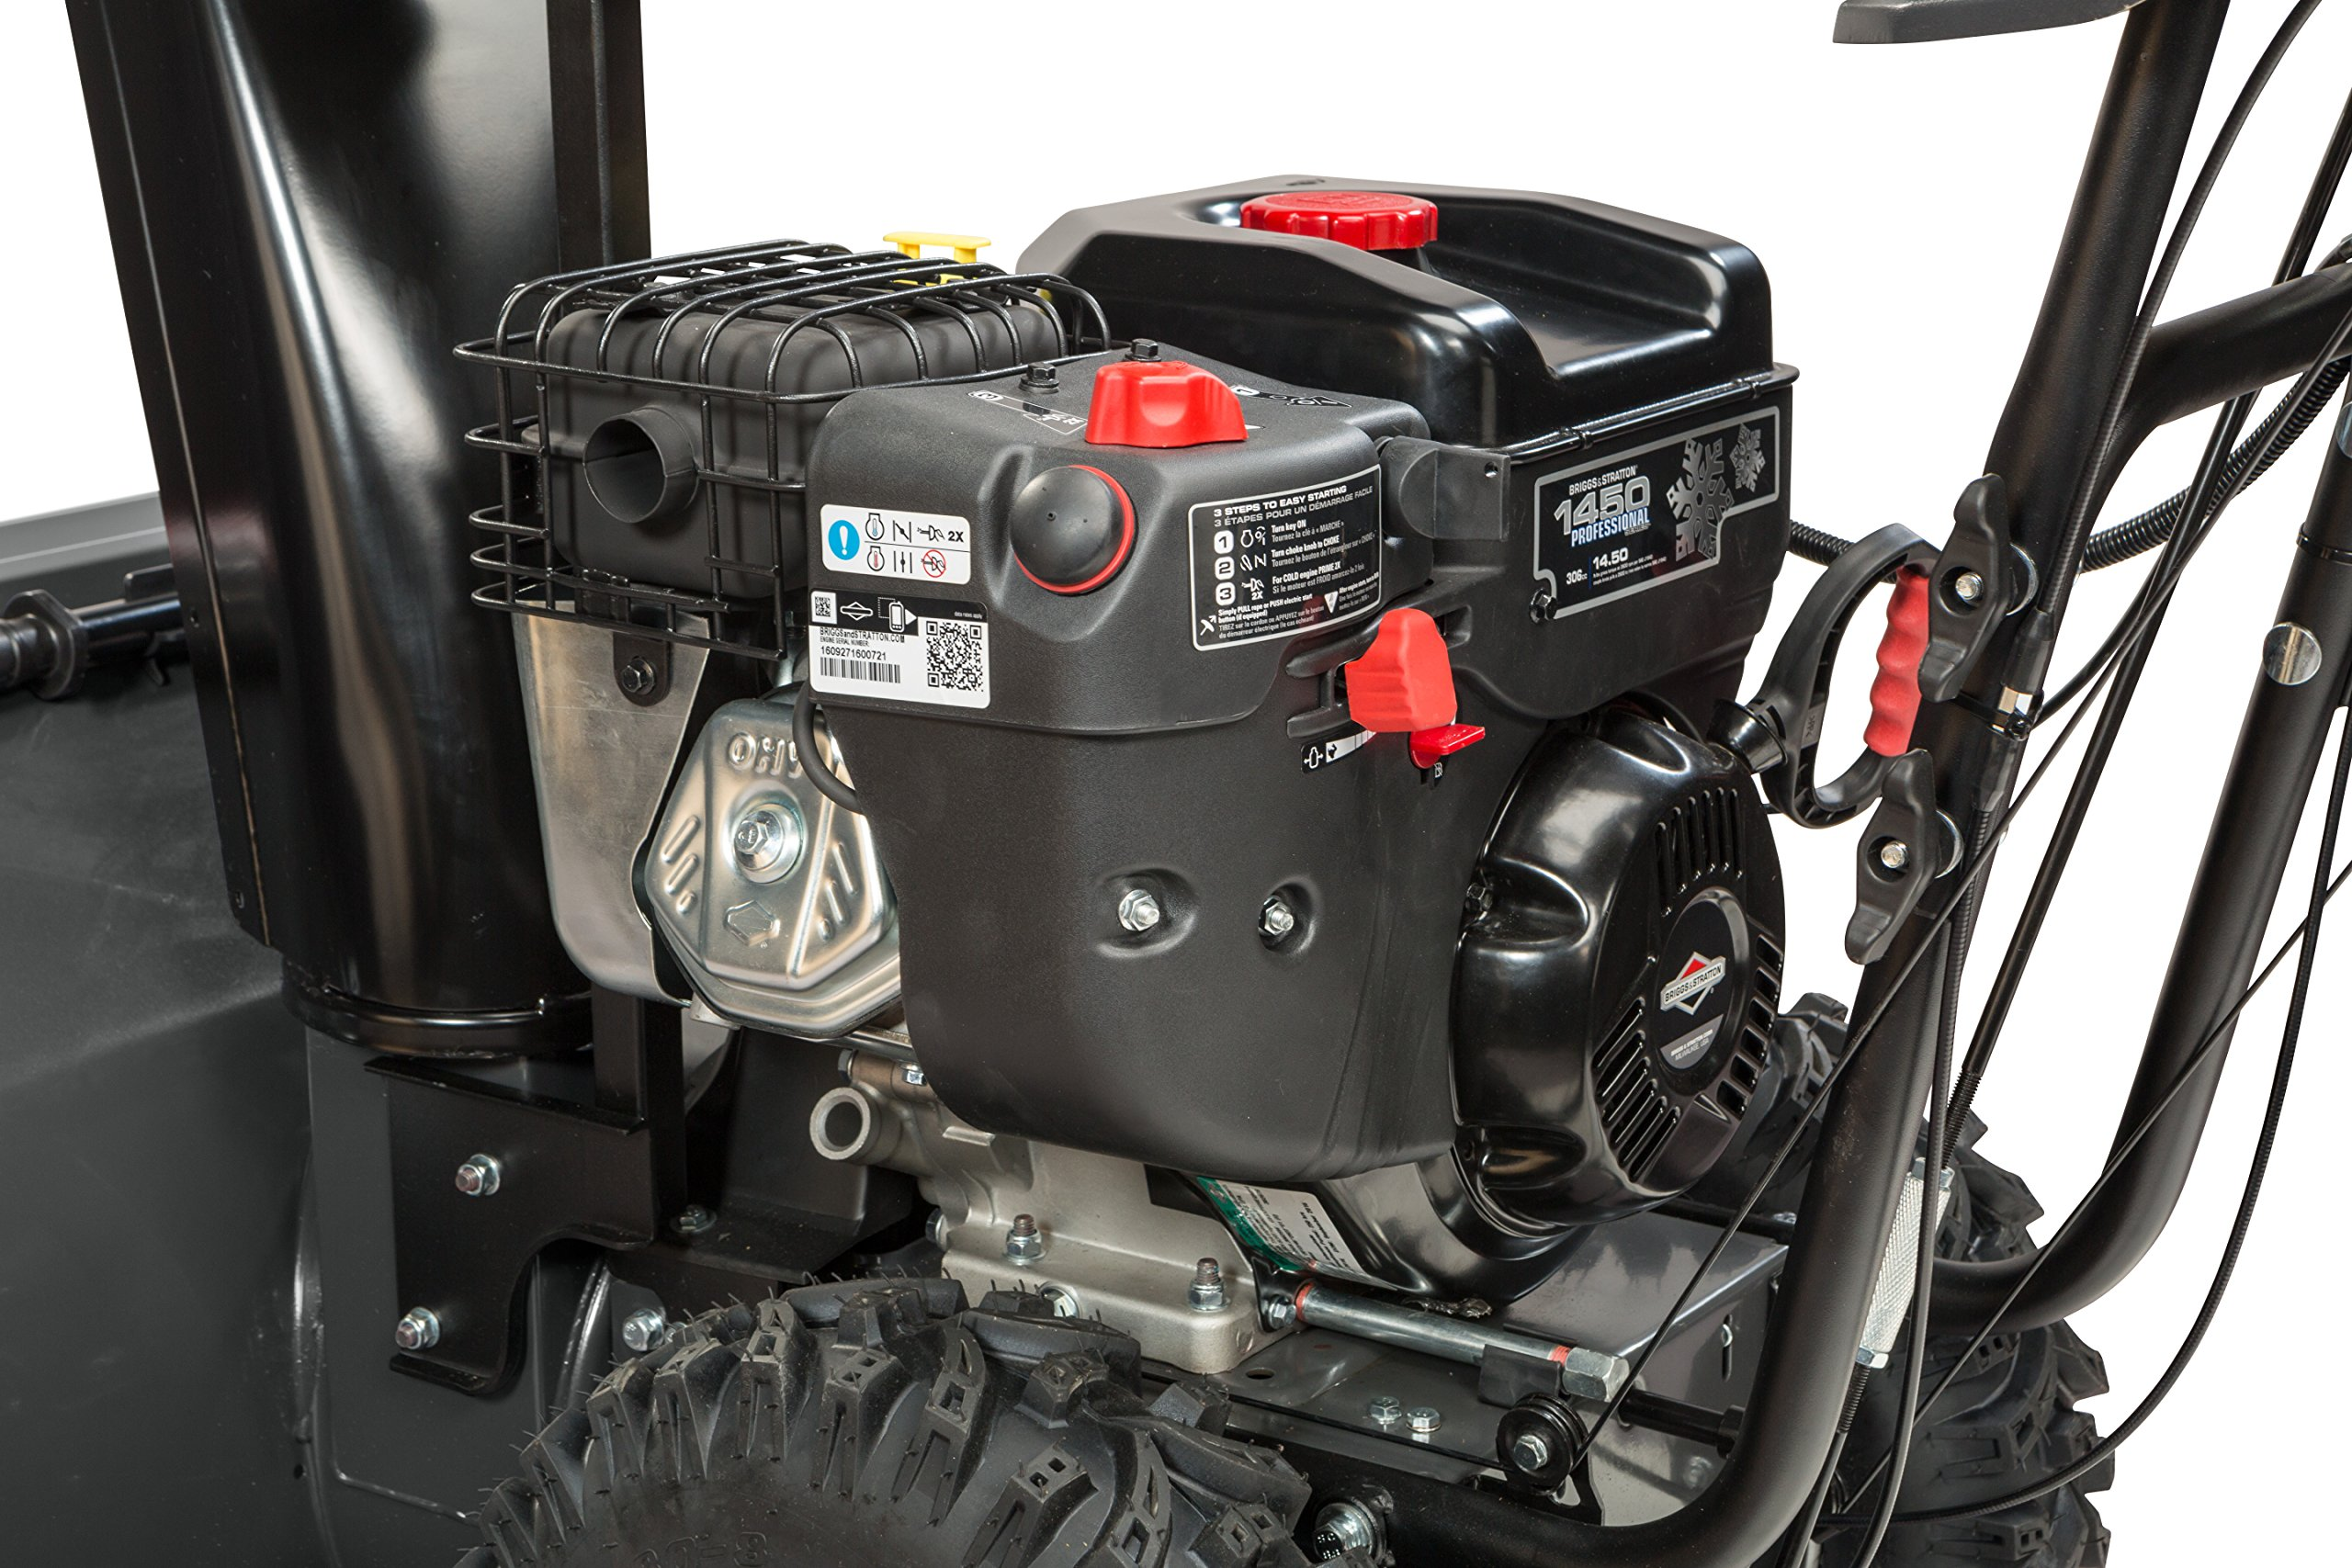 Briggs & Stratton 1530MDS Dual Stage Snowthrower Snow Thrower, 306cc by Briggs & Stratton (Image #5)